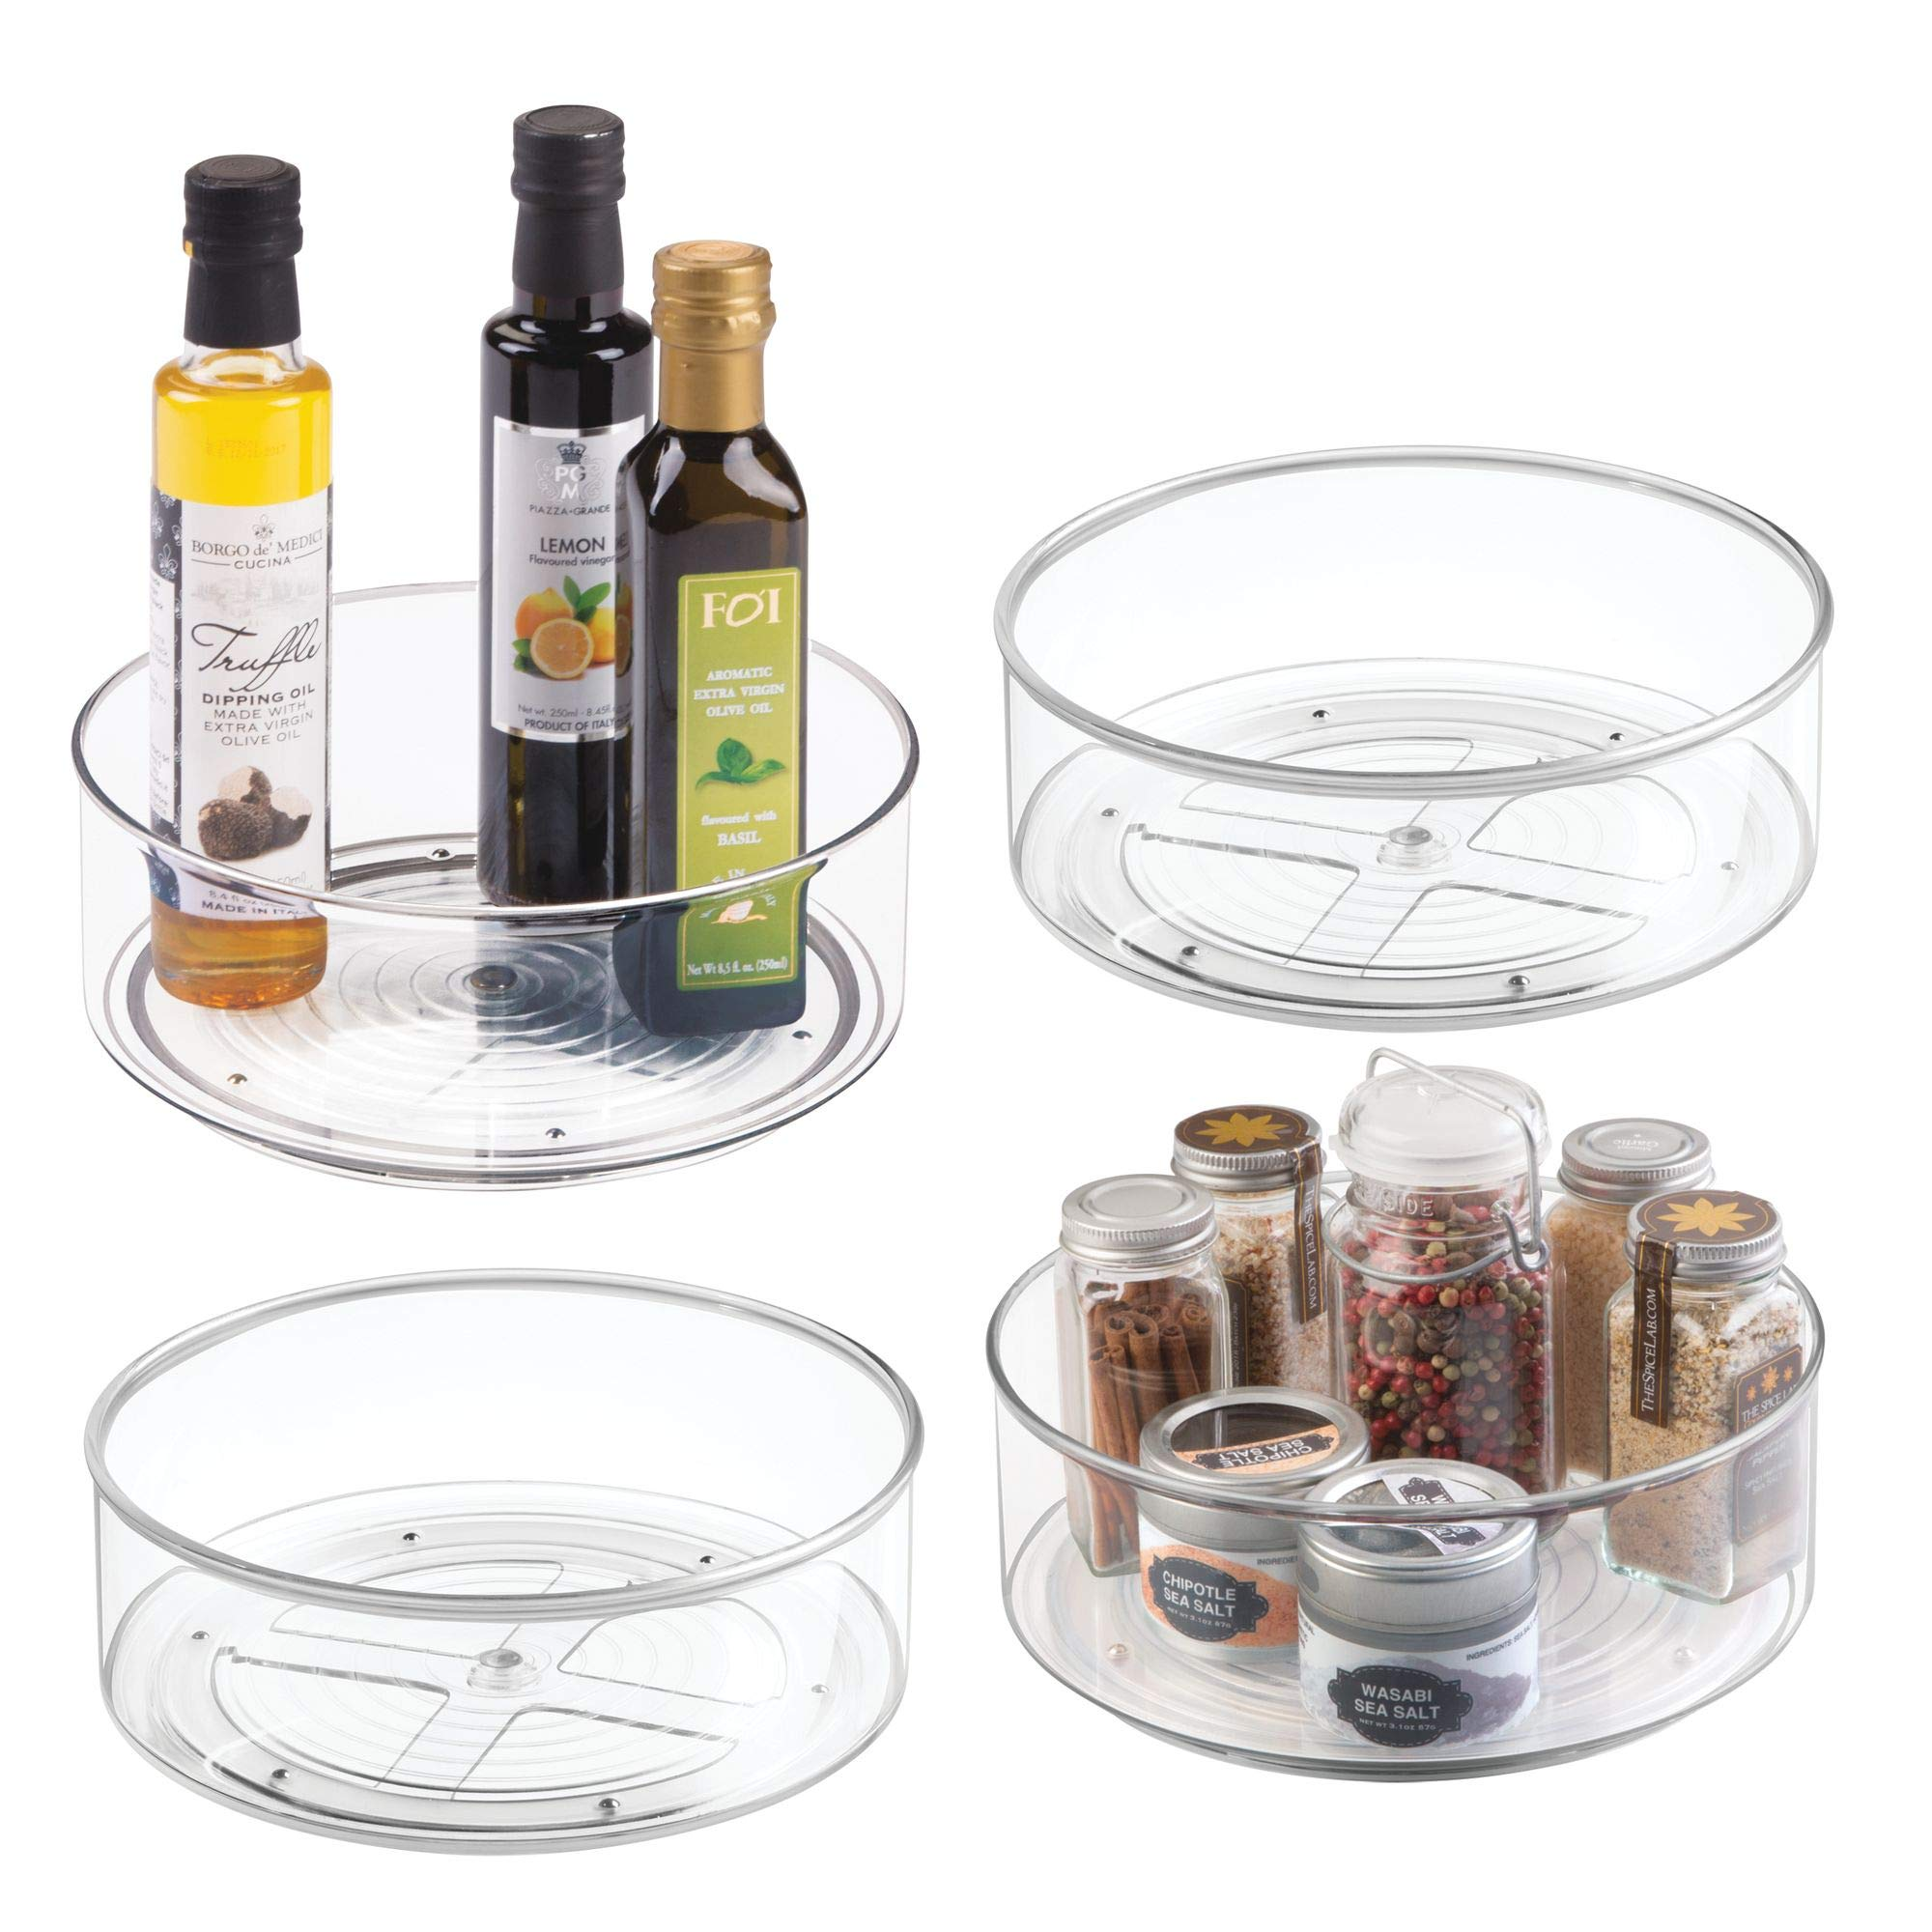 mDesign Plastic Round Lazy Susan Rotating Turntable, Food Storage Container for Cabinets, Pantry, Refrigerator, Countertops, Spinning Organizer for Spices, Condiments, Baking Supplies, 4 Pack - Clear